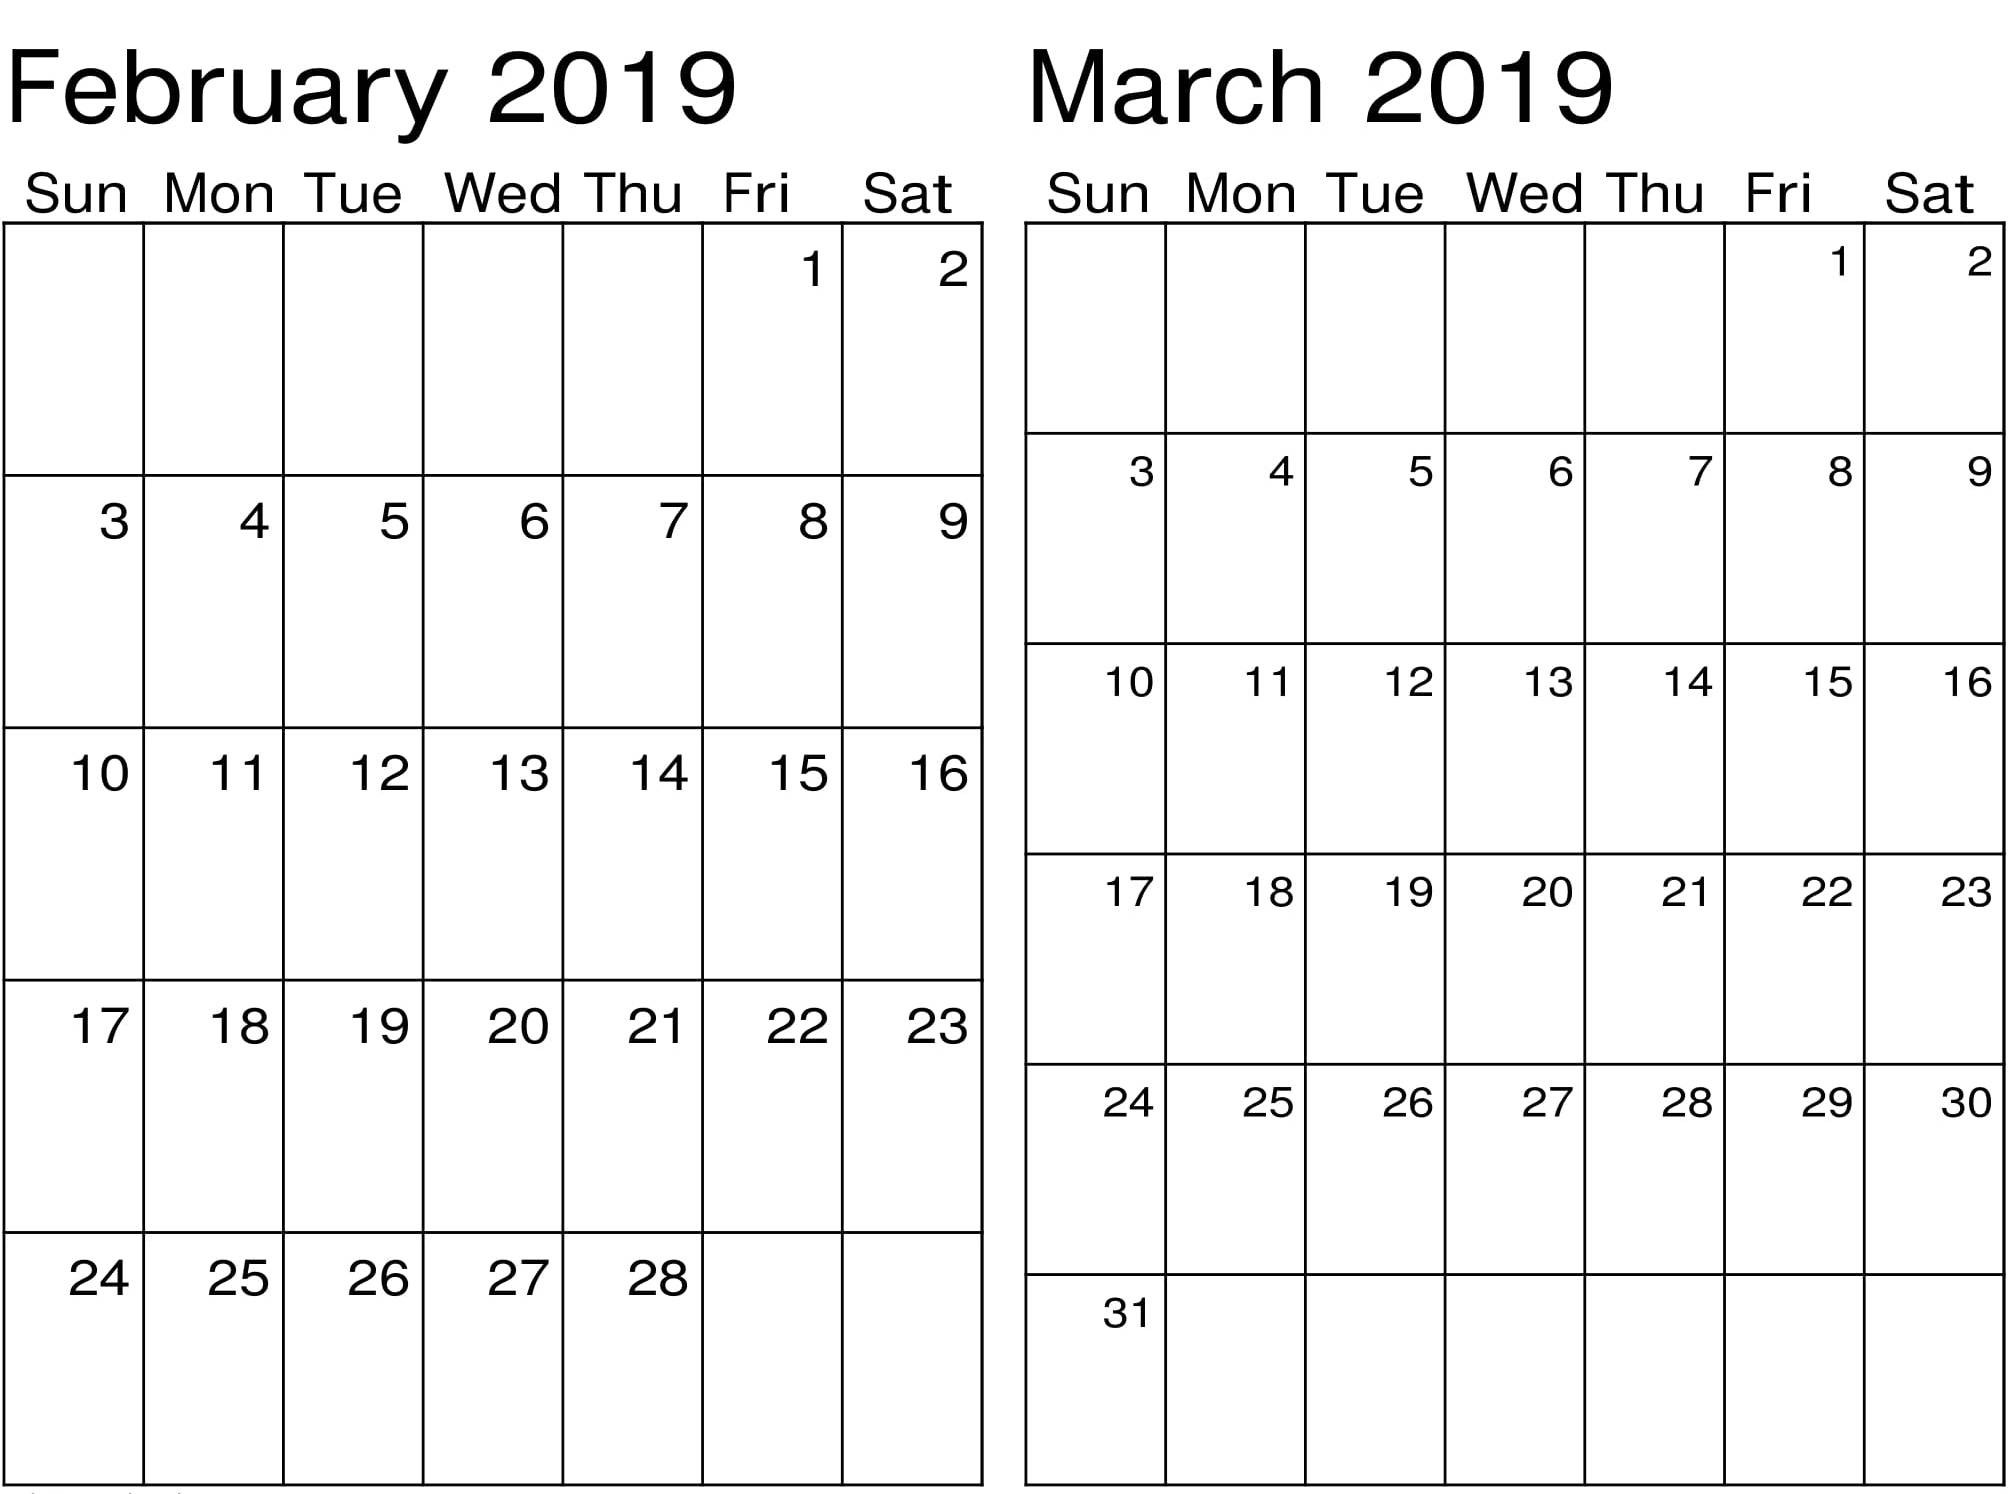 March Calendar 2019 Más Populares February March Calendar 2019 2018 Printable Calendar Store Of March Calendar 2019 Más Populares February March Calendar 2019 2018 Printable Calendar Store